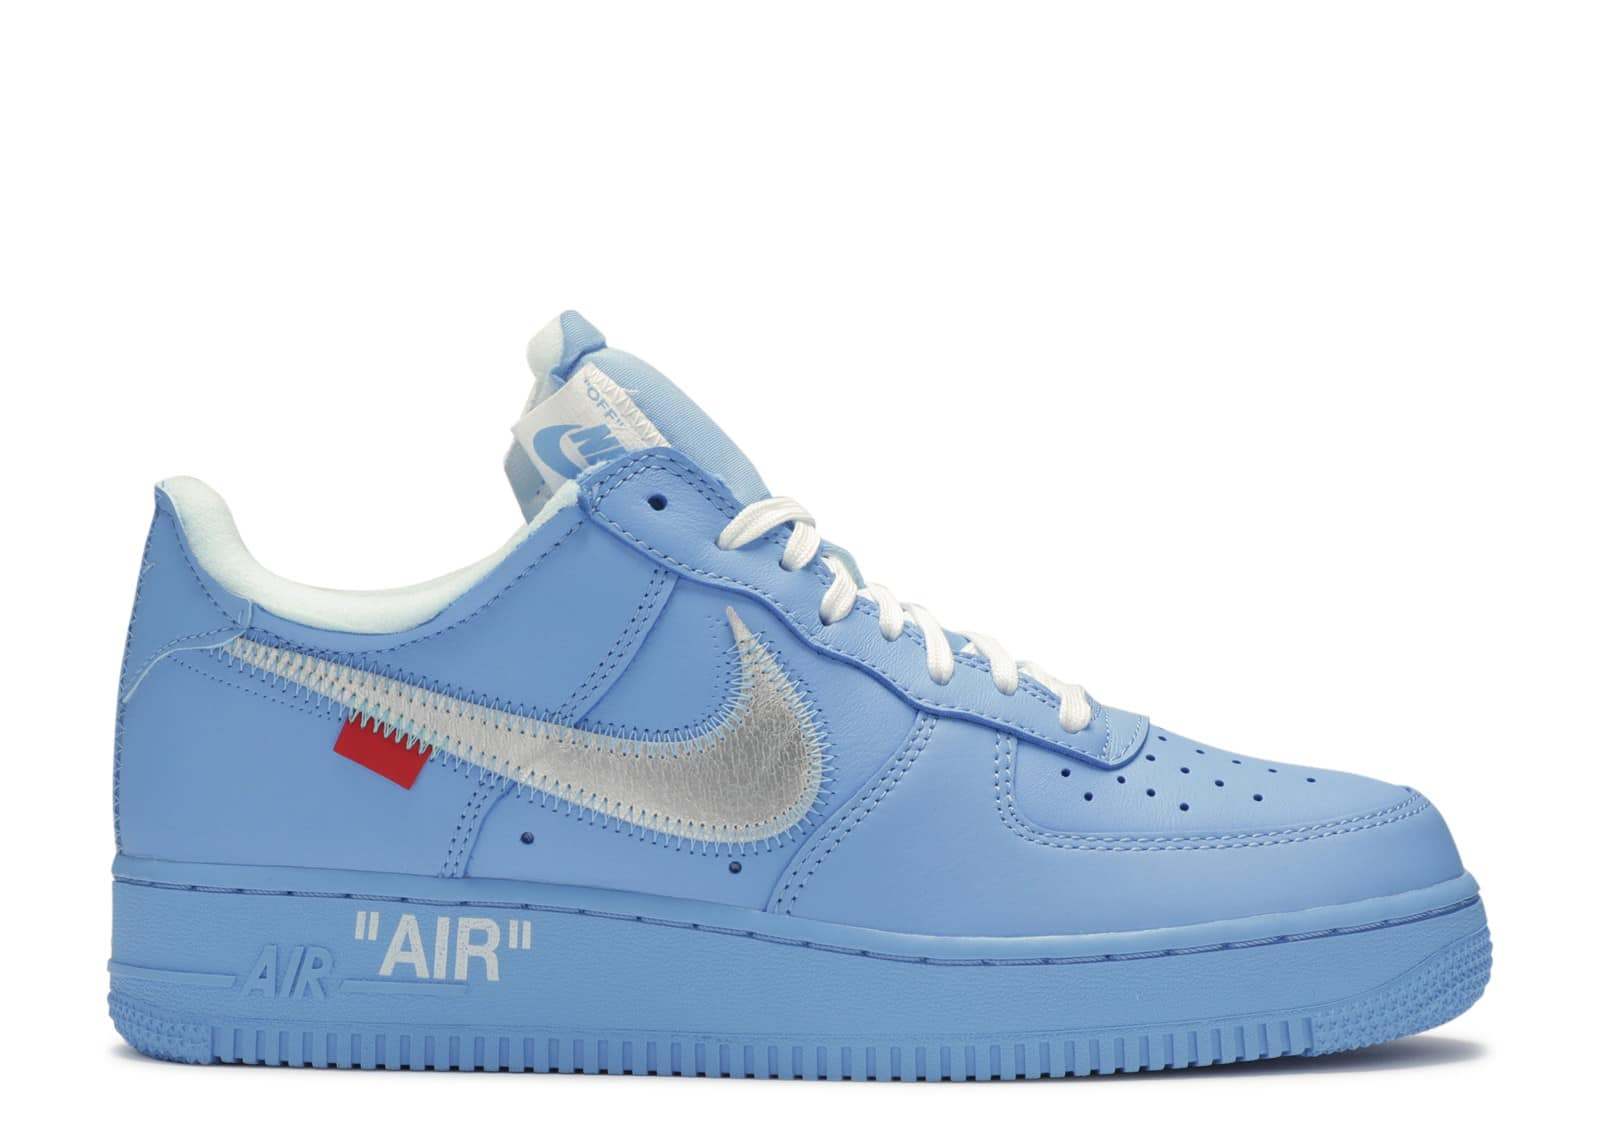 Off White Air Force 1 Low MCA University Blue kickstw